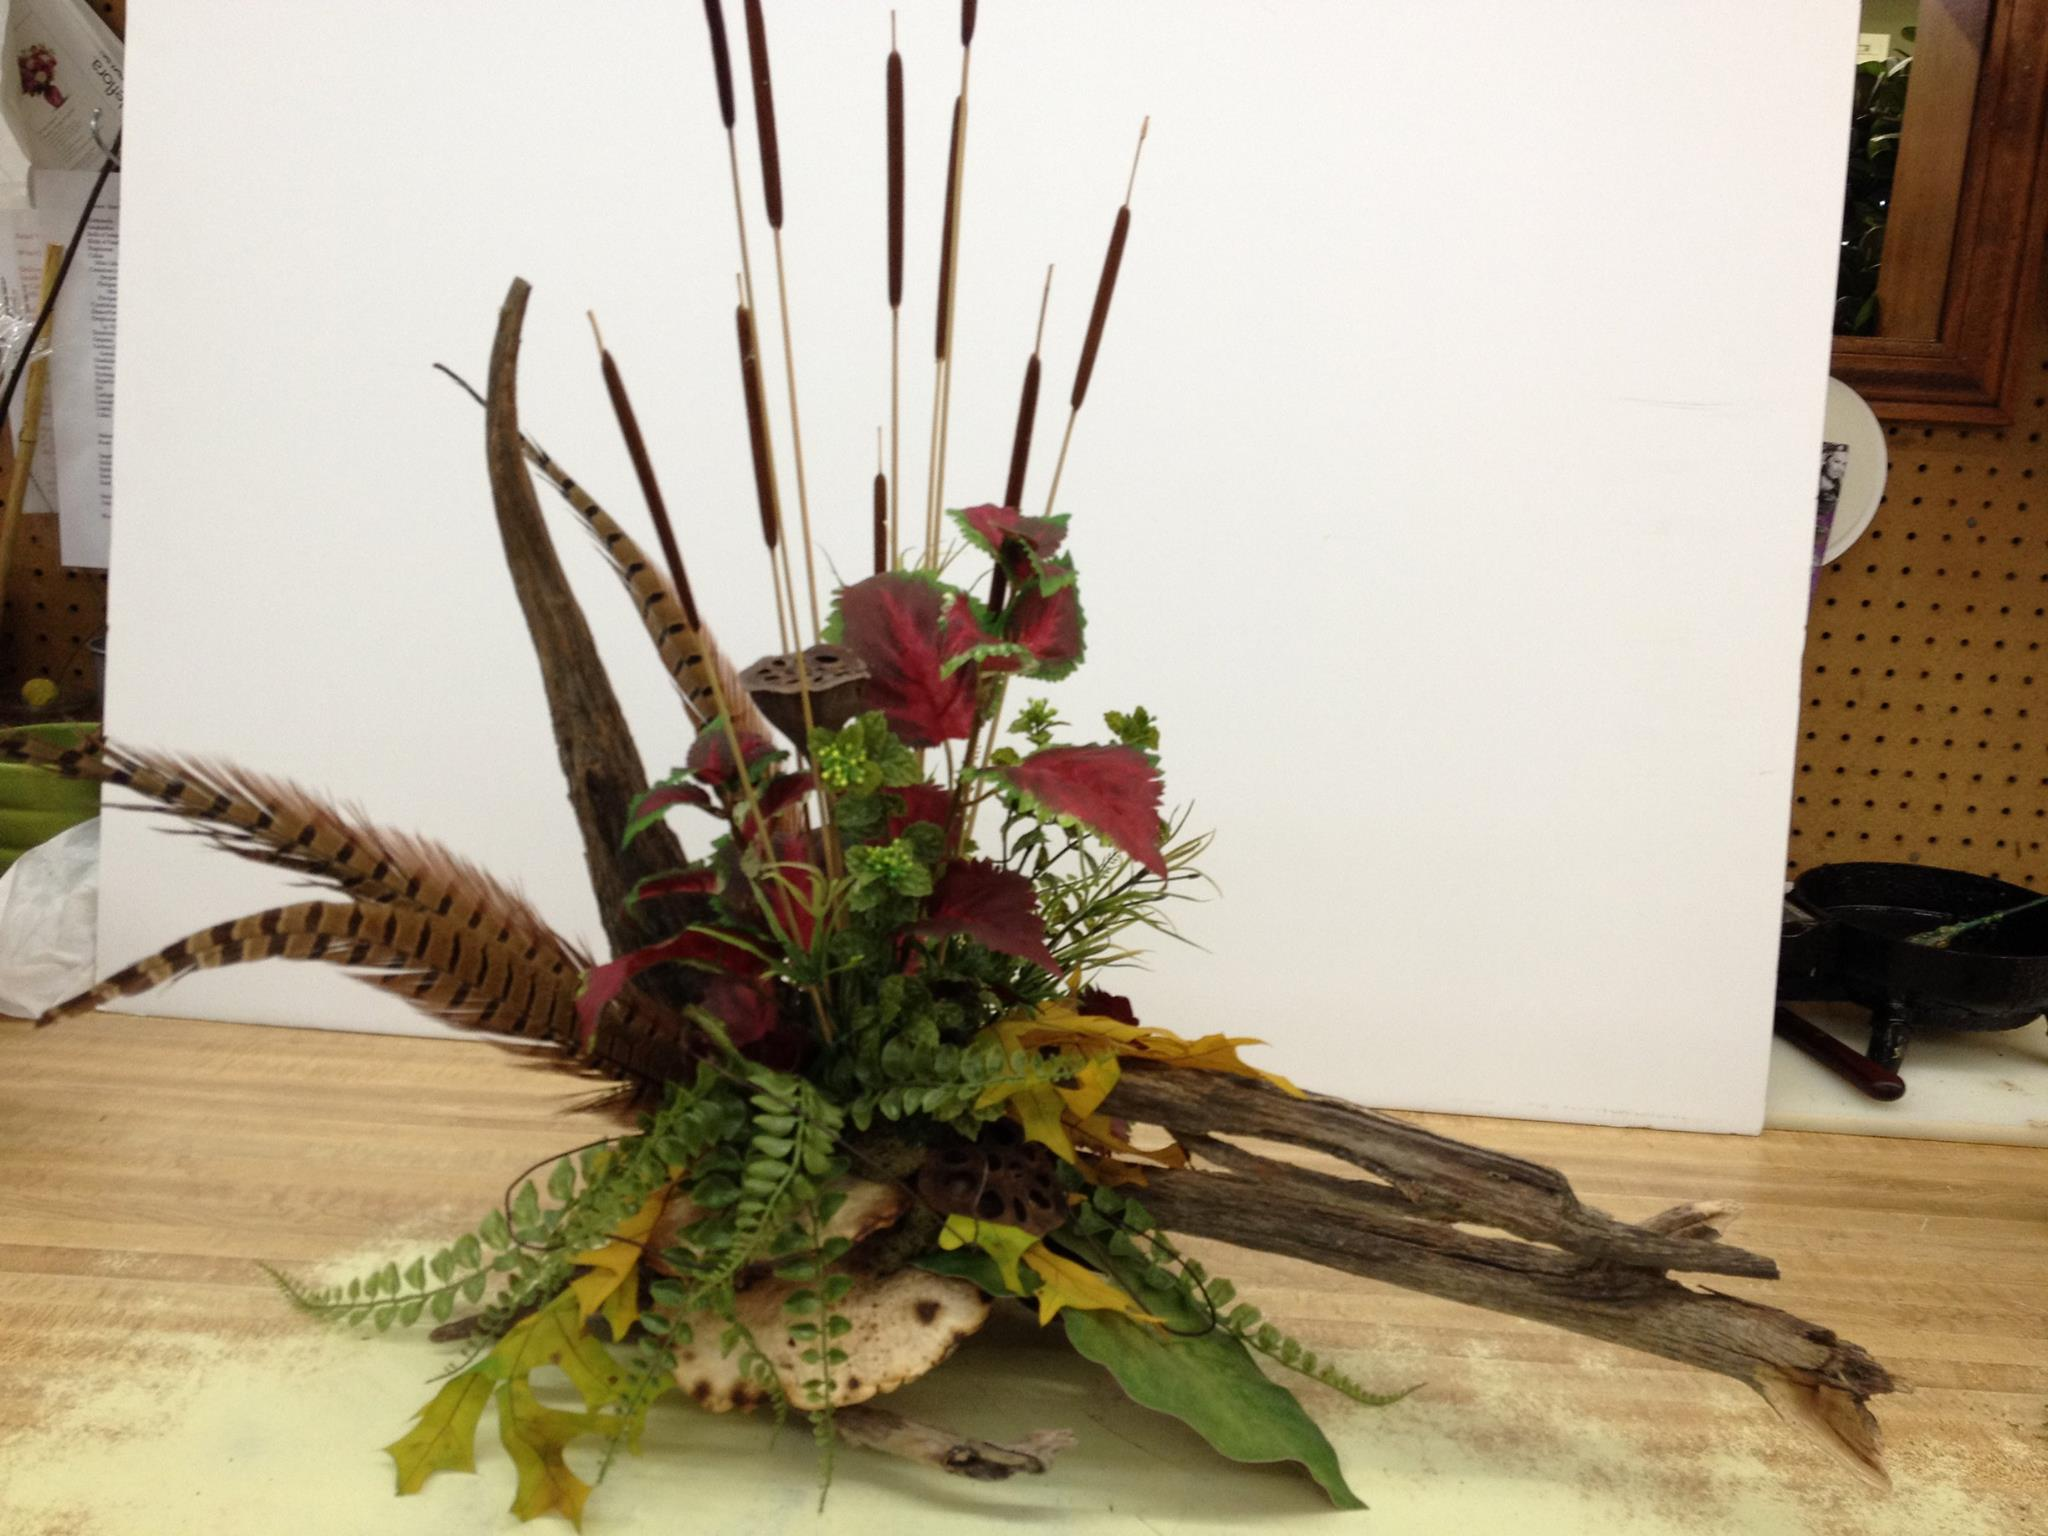 Friday florist recap 67 613 labor of love using driftwood creatively at the flower patch more in bolivar izmirmasajfo Image collections